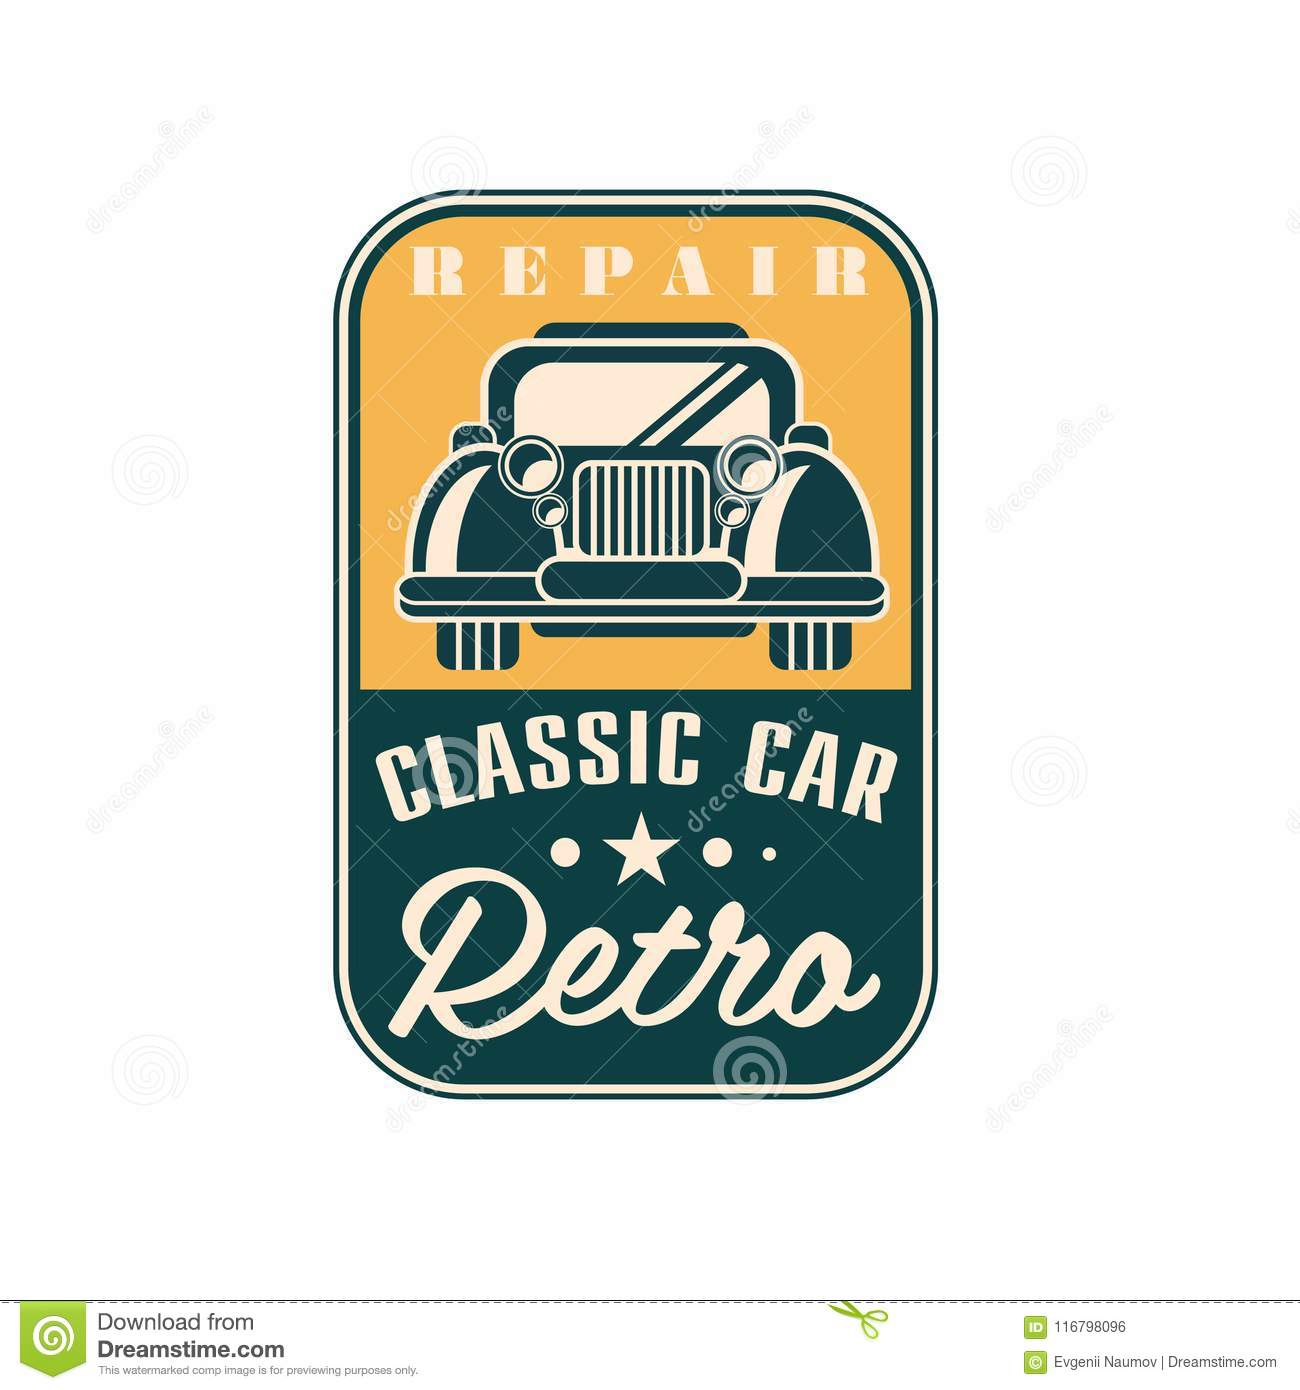 Repair Classic Car Logo, Retro Vintage Label, Auto Service Badge